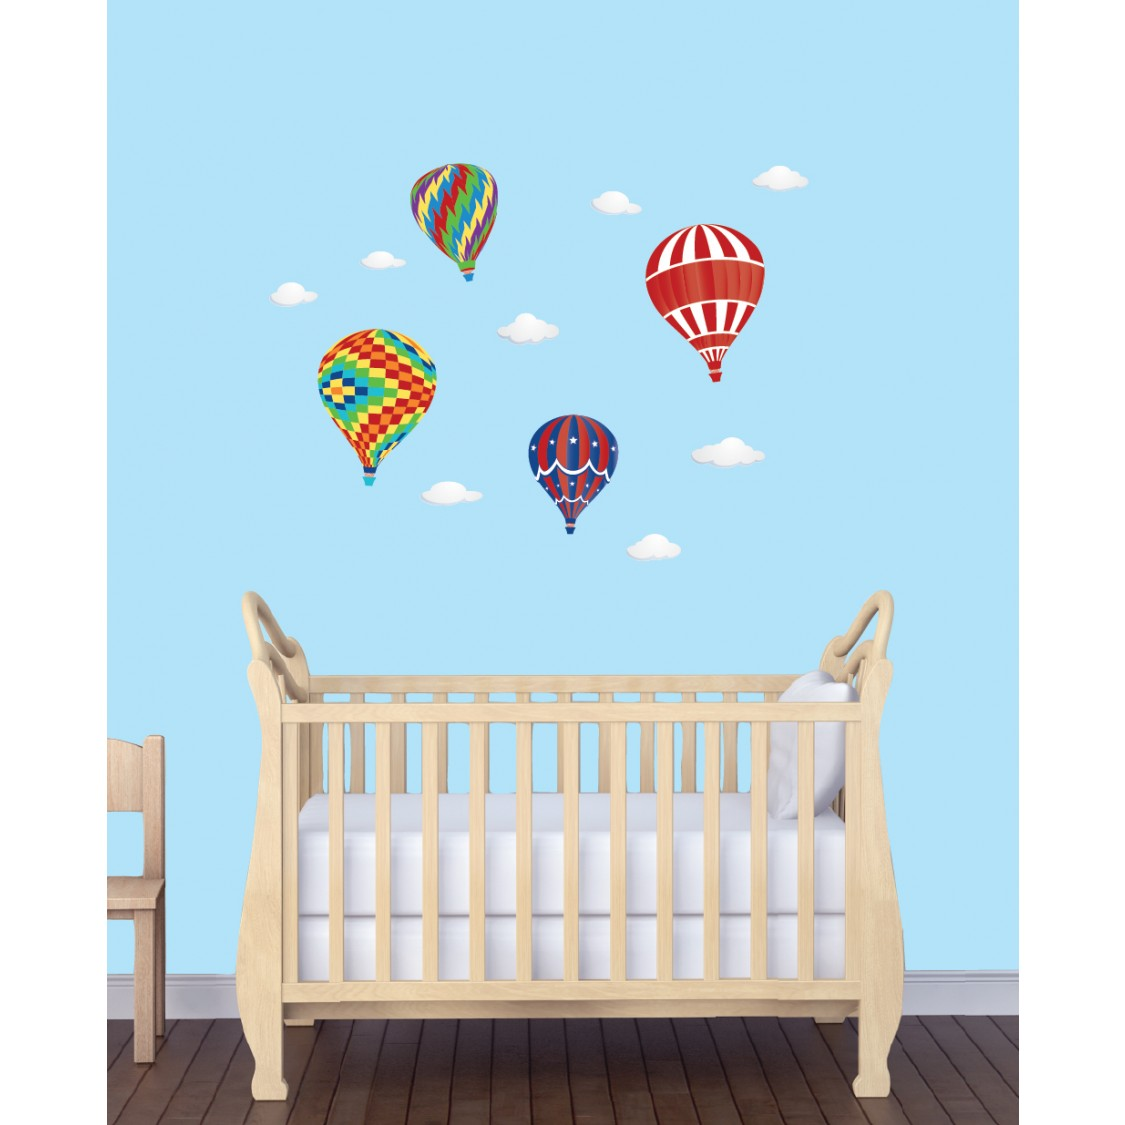 Realistic Wall Stickers For Kids Bedrooms & Hot Air Balloon Decals For Children